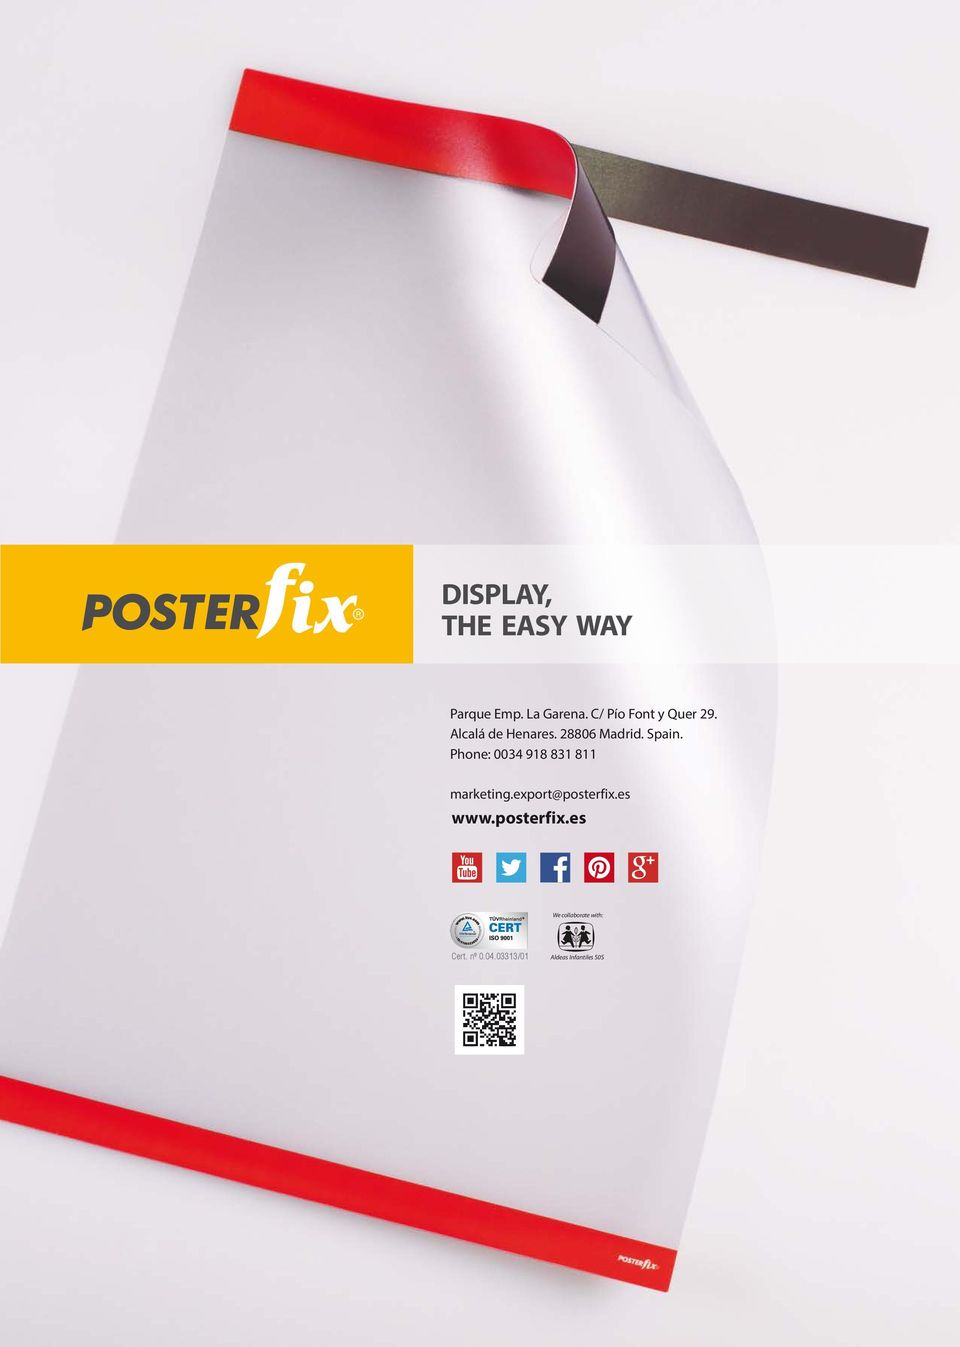 Spain. Phone: 0034 918 831 811 marketing.export@posterfix.